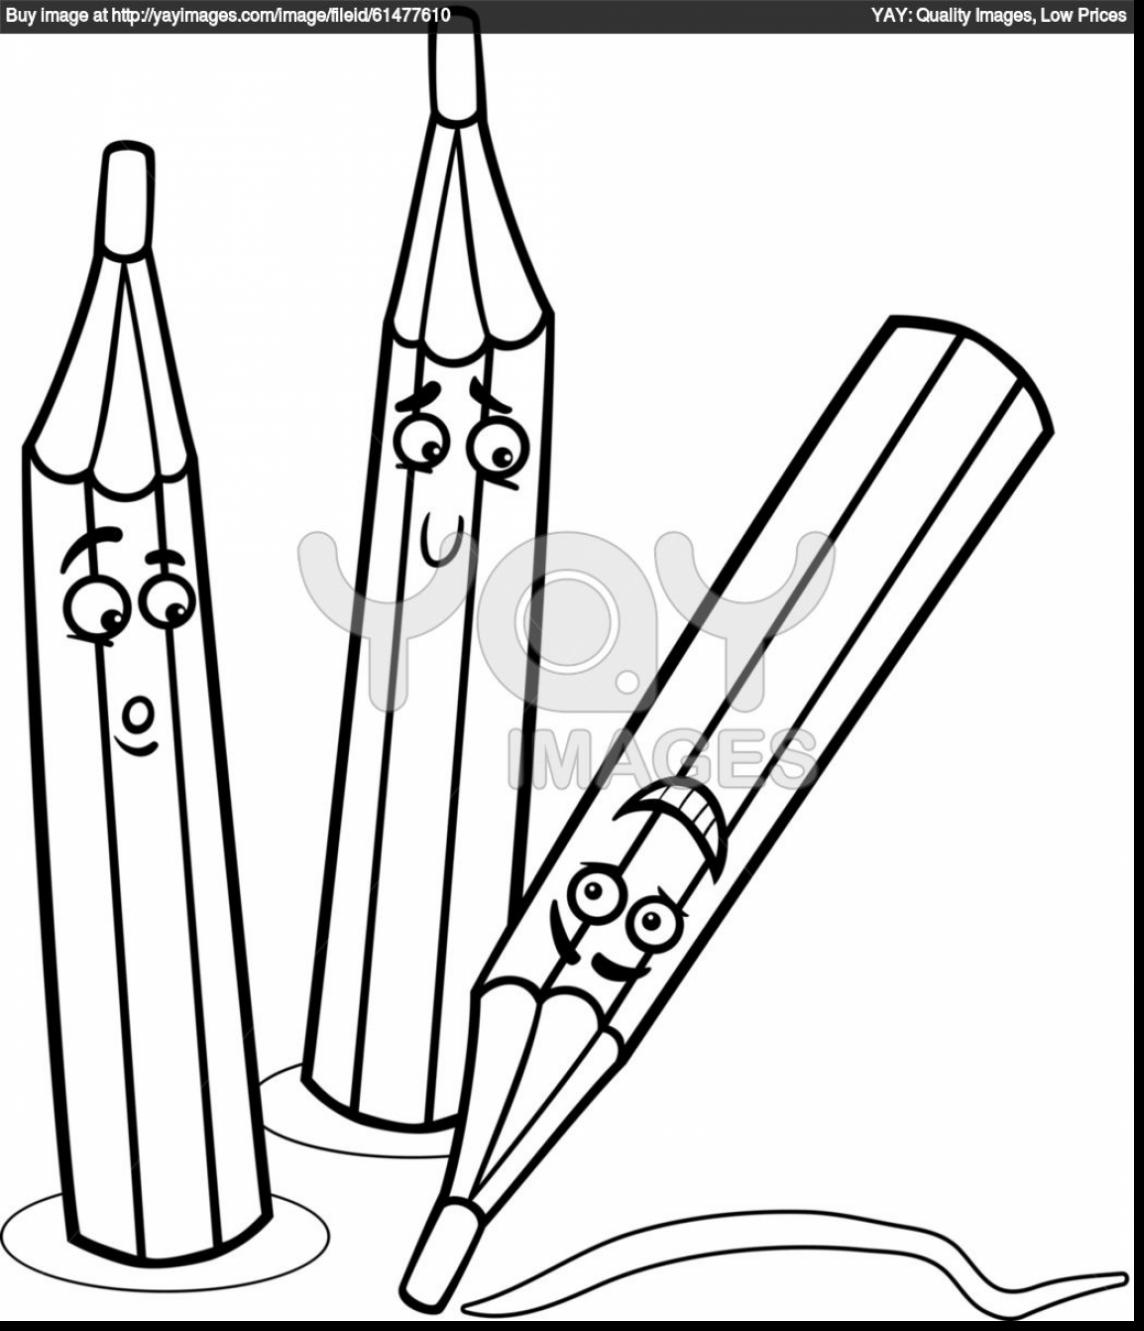 1144x1331 Superb Crayola Coloring Pages With Crayon Coloring Pages